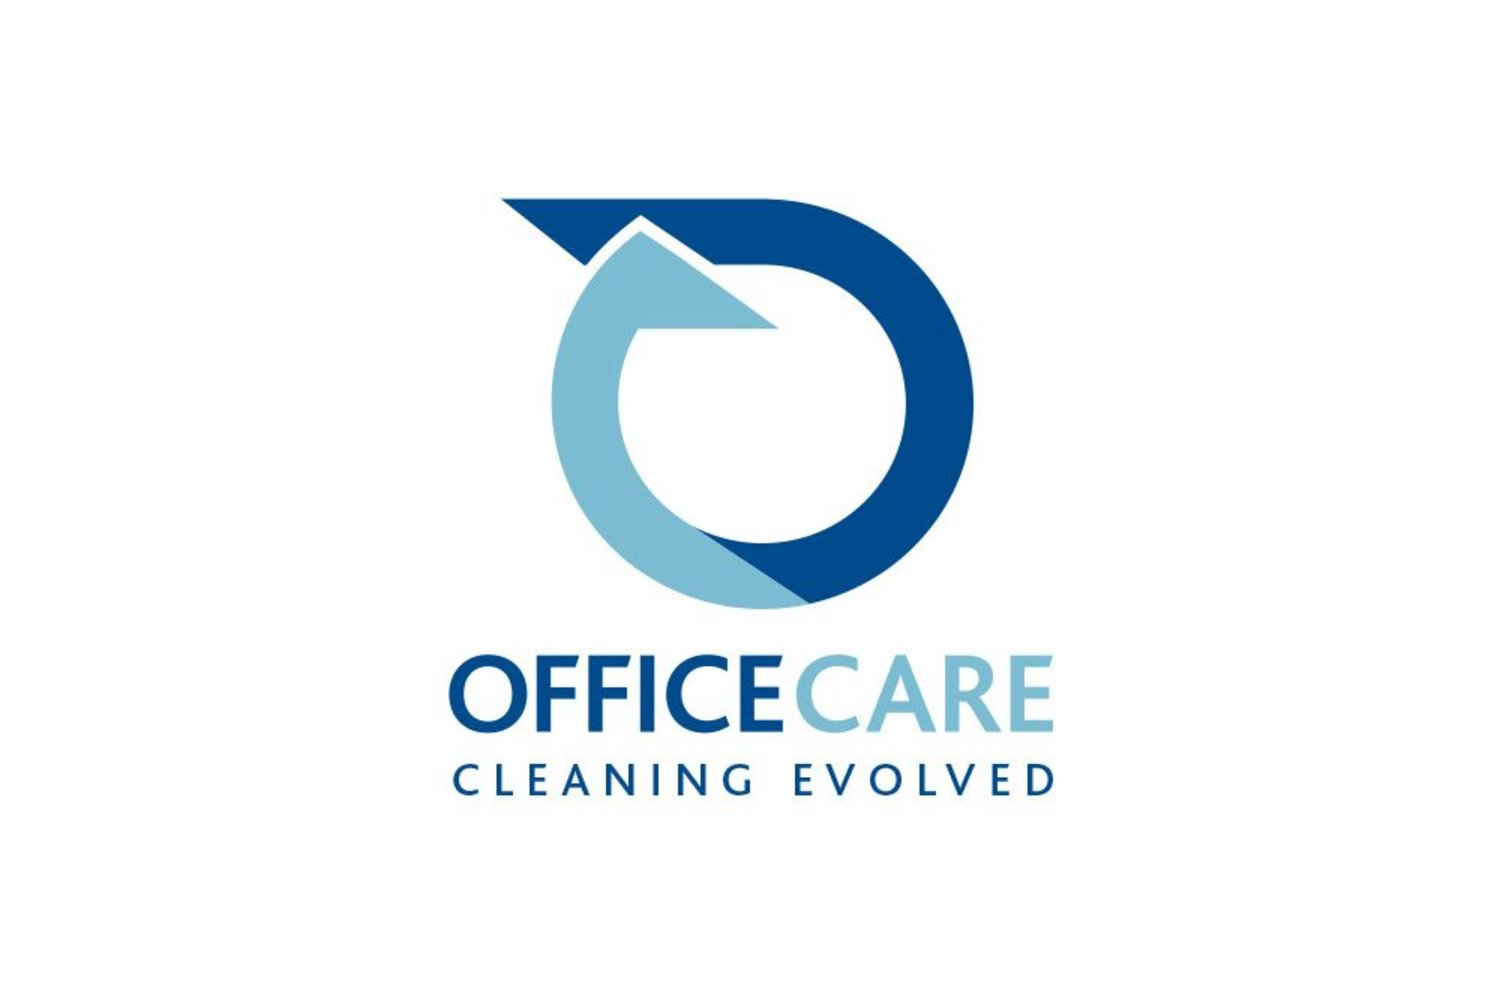 Office Care logo